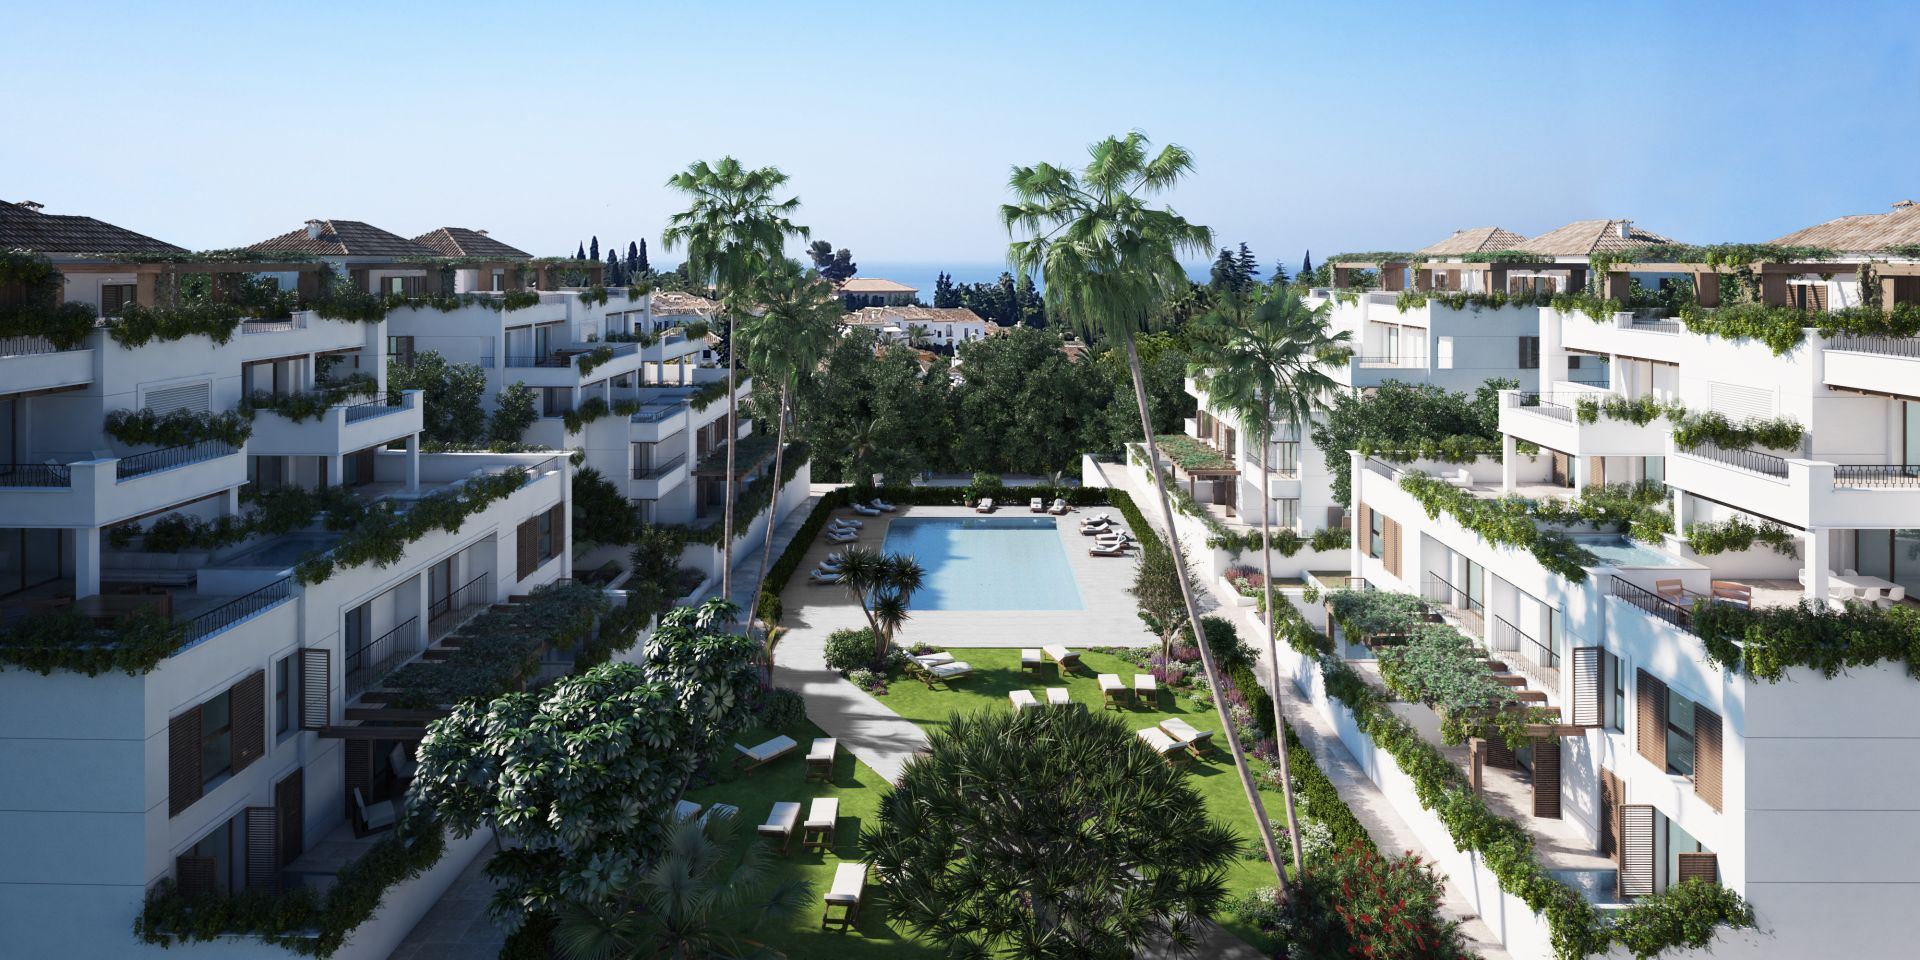 Lomas del Rey , Altos de Puente Romano, Marbella Golden Mile, Marbella - Apartments, Lomas del Rey | Christie's International Real Estate